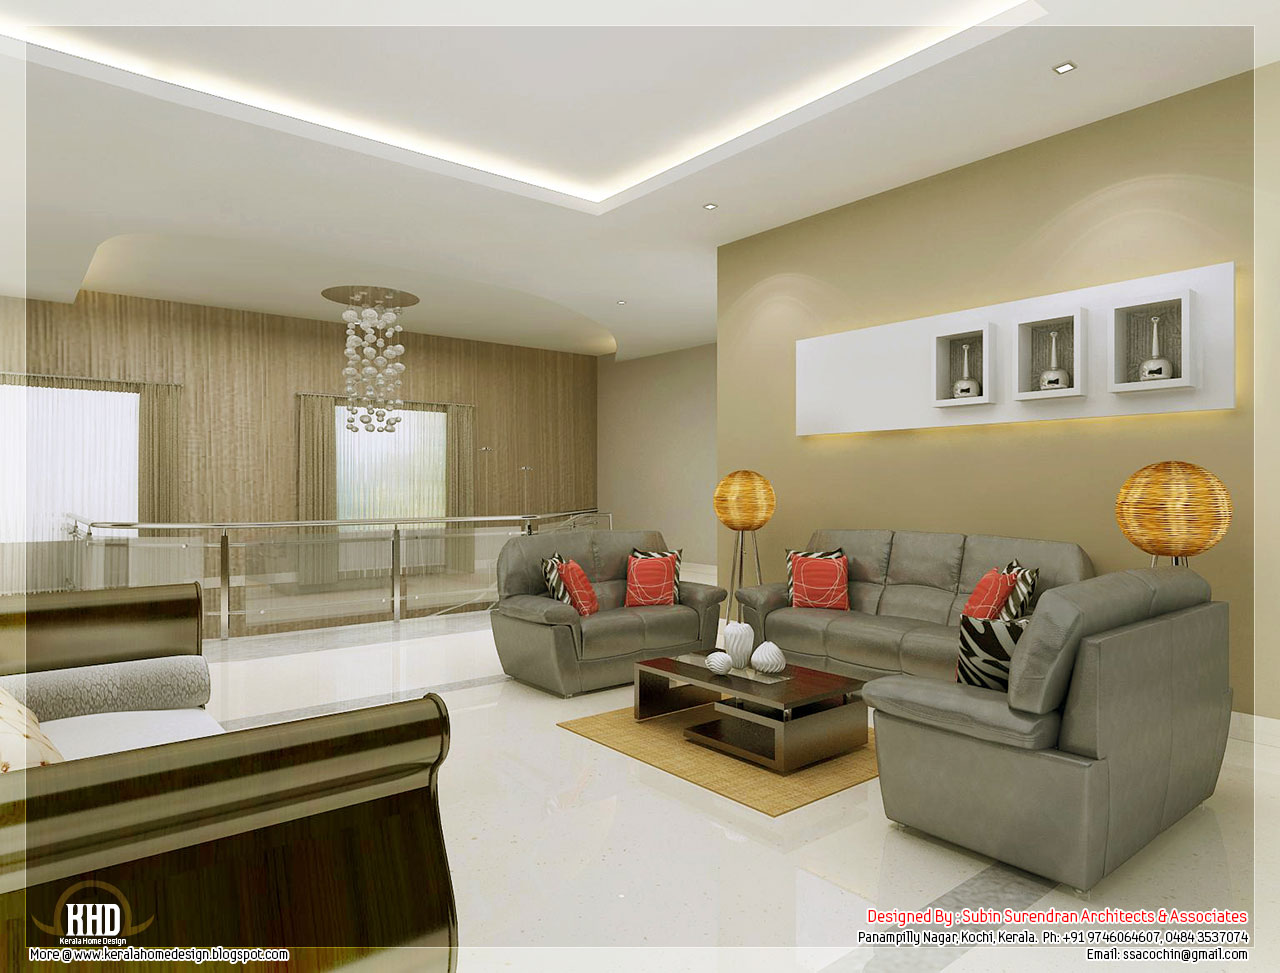 Awesome 3d interior renderings kerala home design and Living room interior for small house